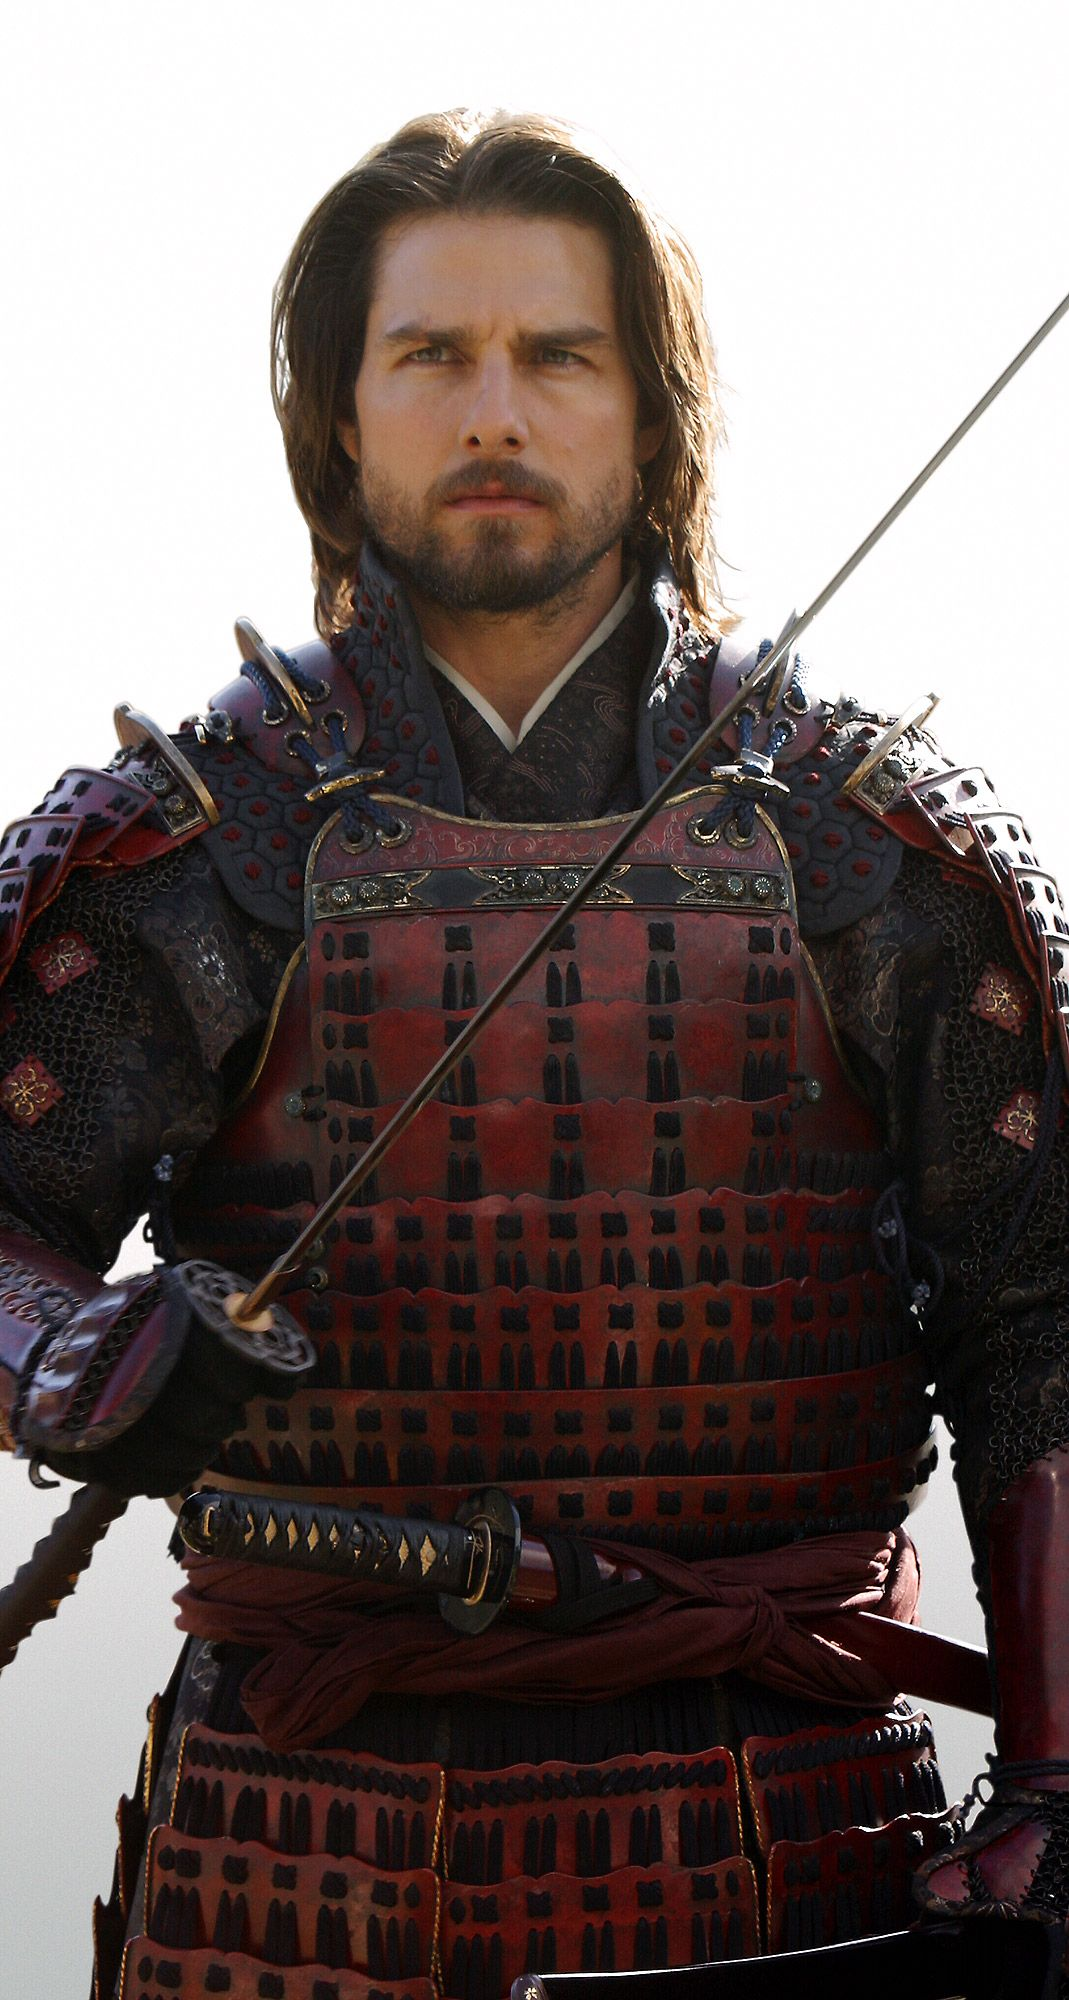 Best Free Love The Last Samurai Wallpapers  Wallpaperaccess X Why Tom Cruises The Last Samurai Is Totally Underrated   Inverse